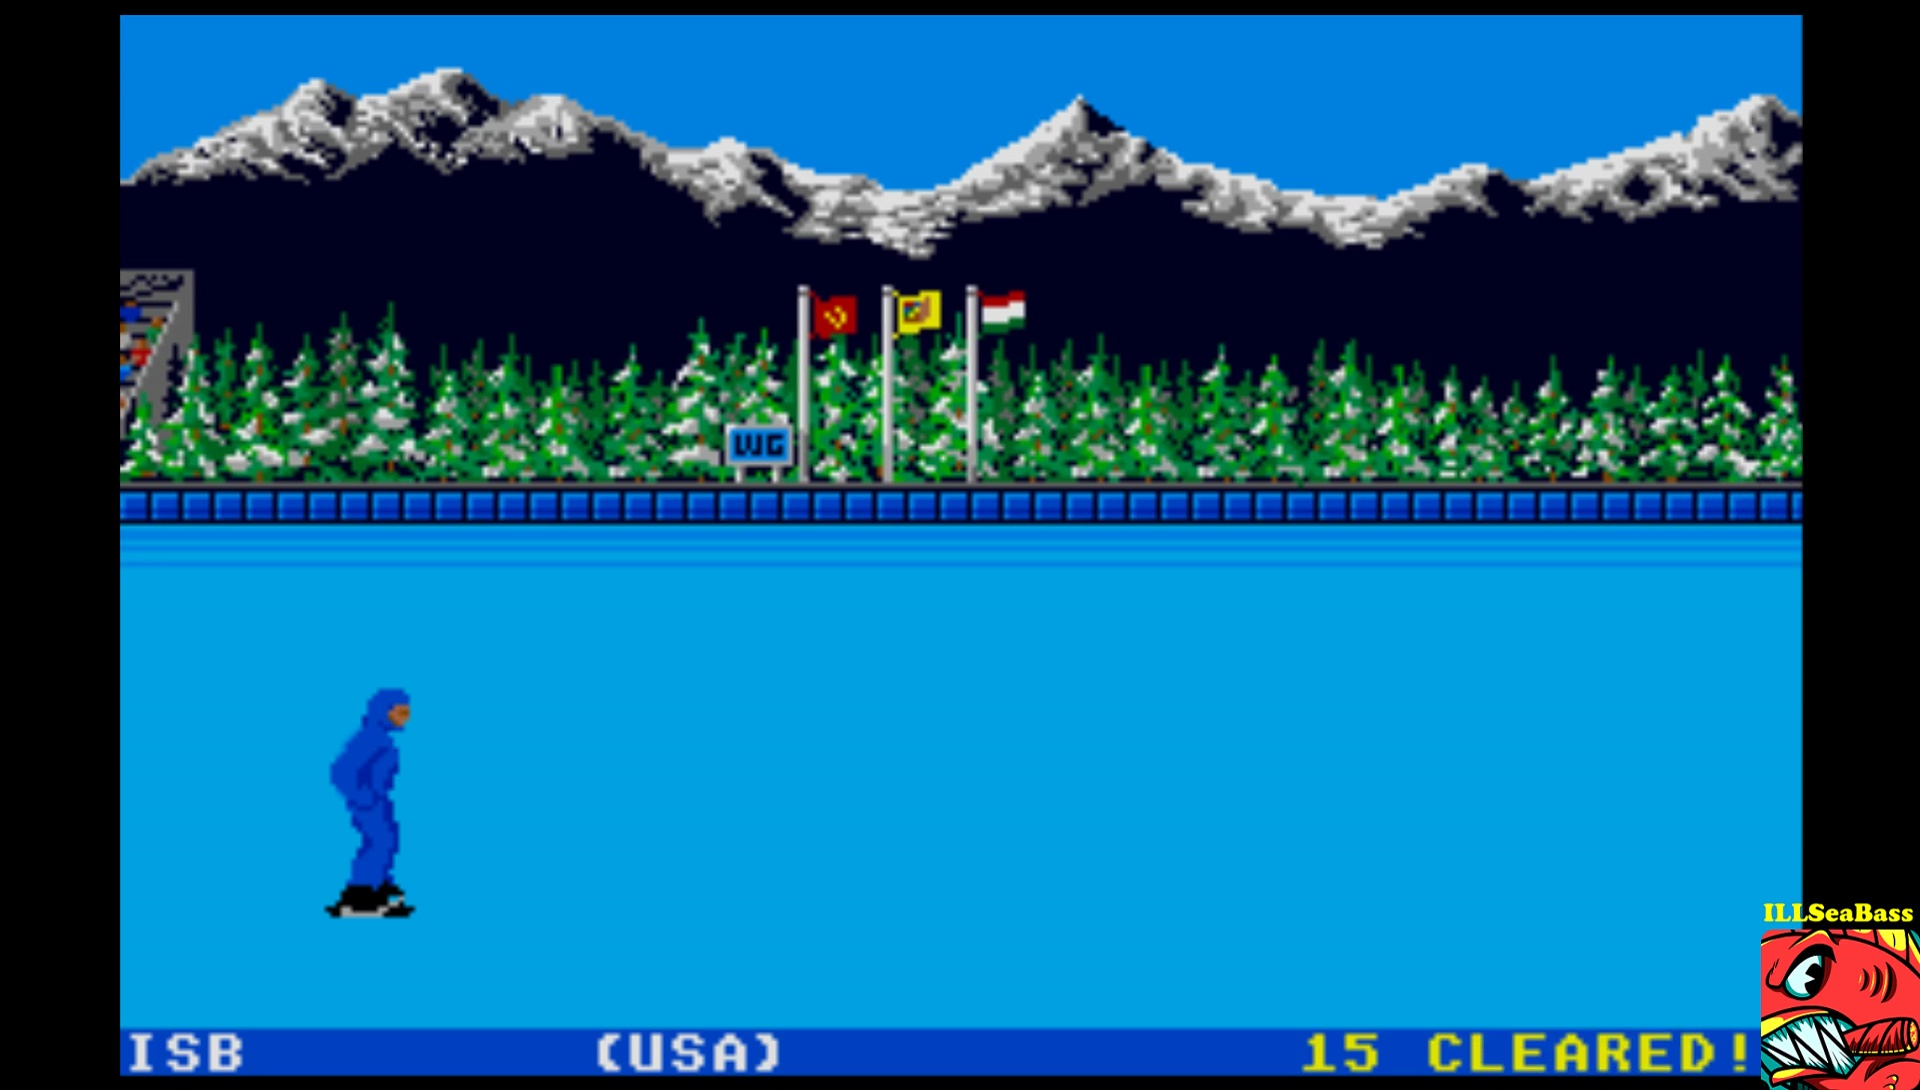 ILLSeaBass: World Games: Barrel Jumping [Barrels cleared] (Atari ST Emulated) 15 points on 2017-03-26 15:11:30